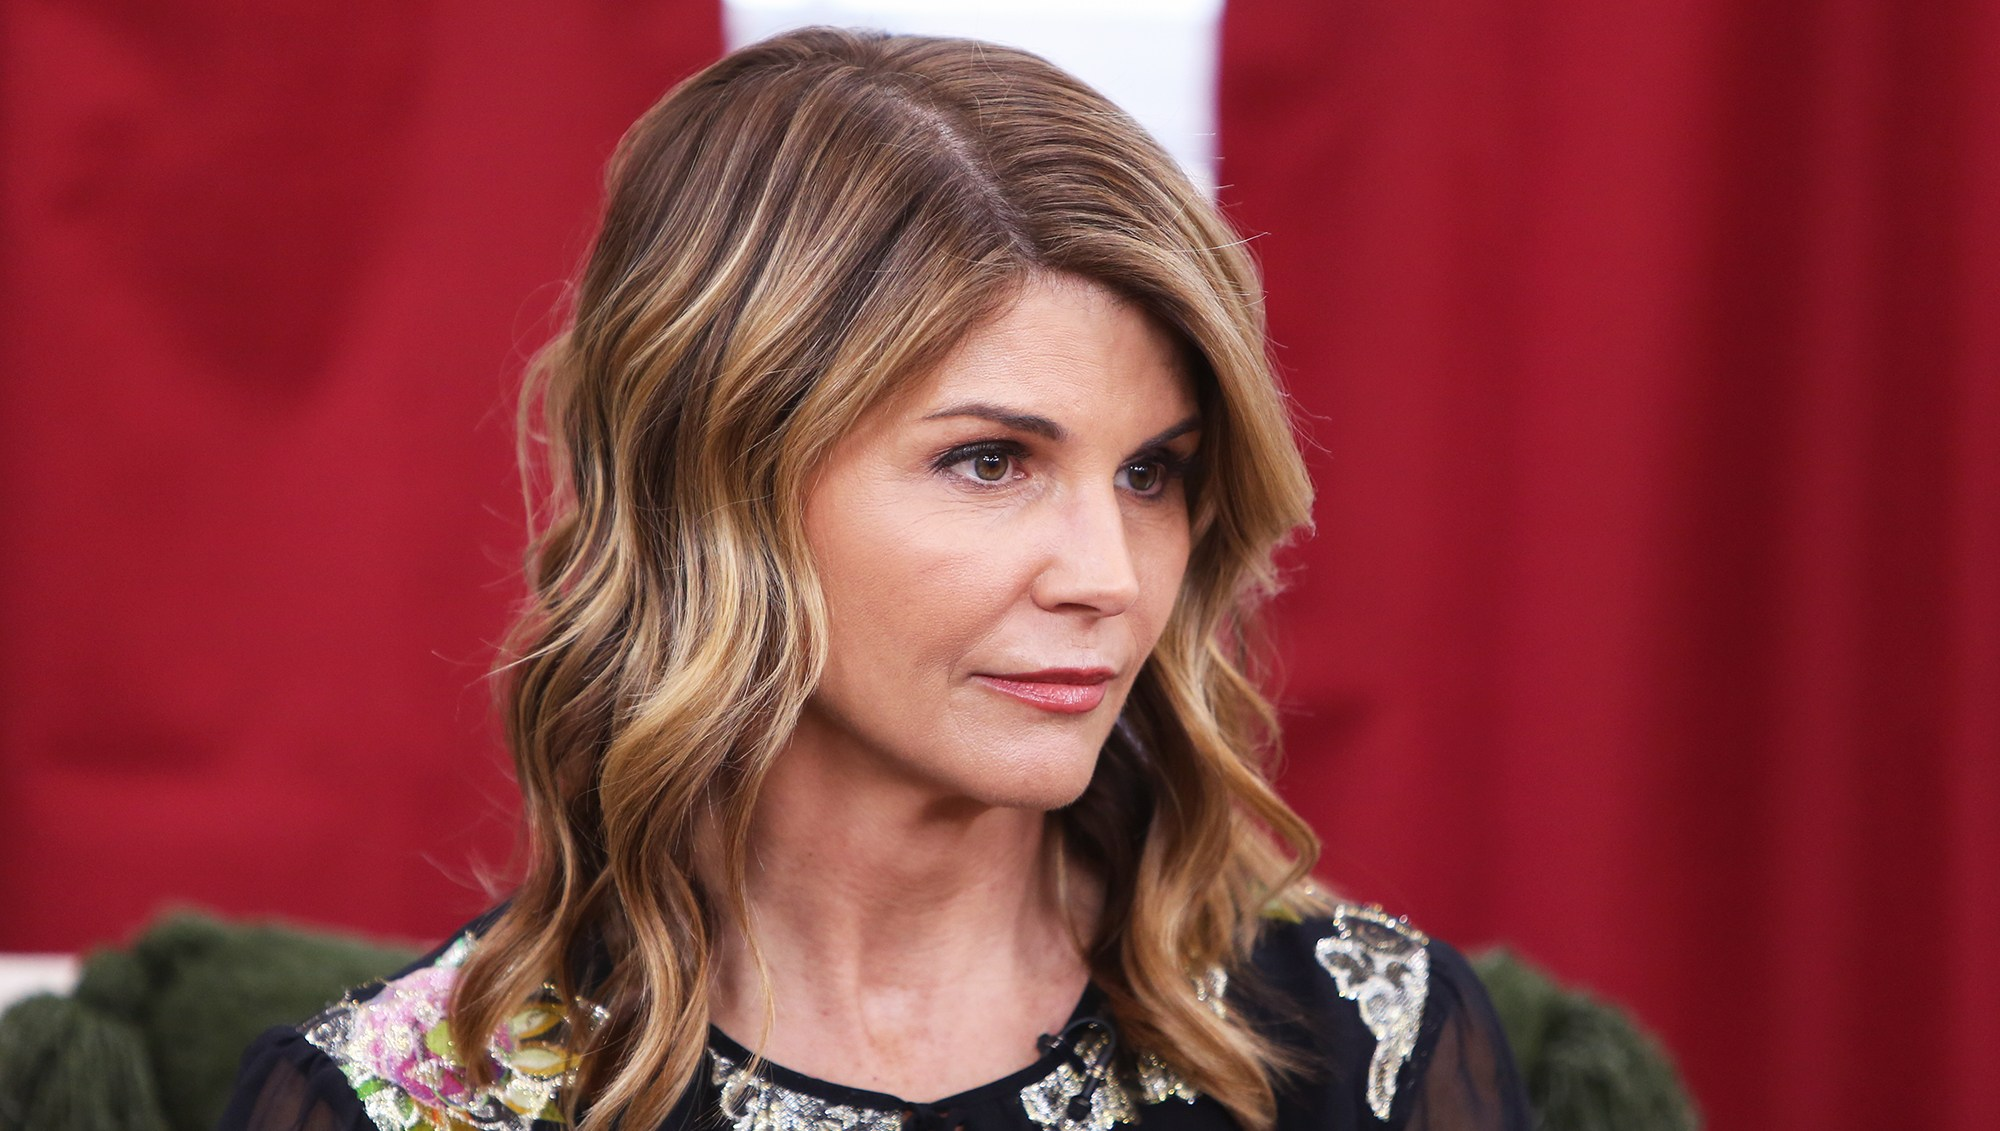 Lori Loughlin Is Living Her 'Worst Nightmare' Amid Bombshell College Scandal